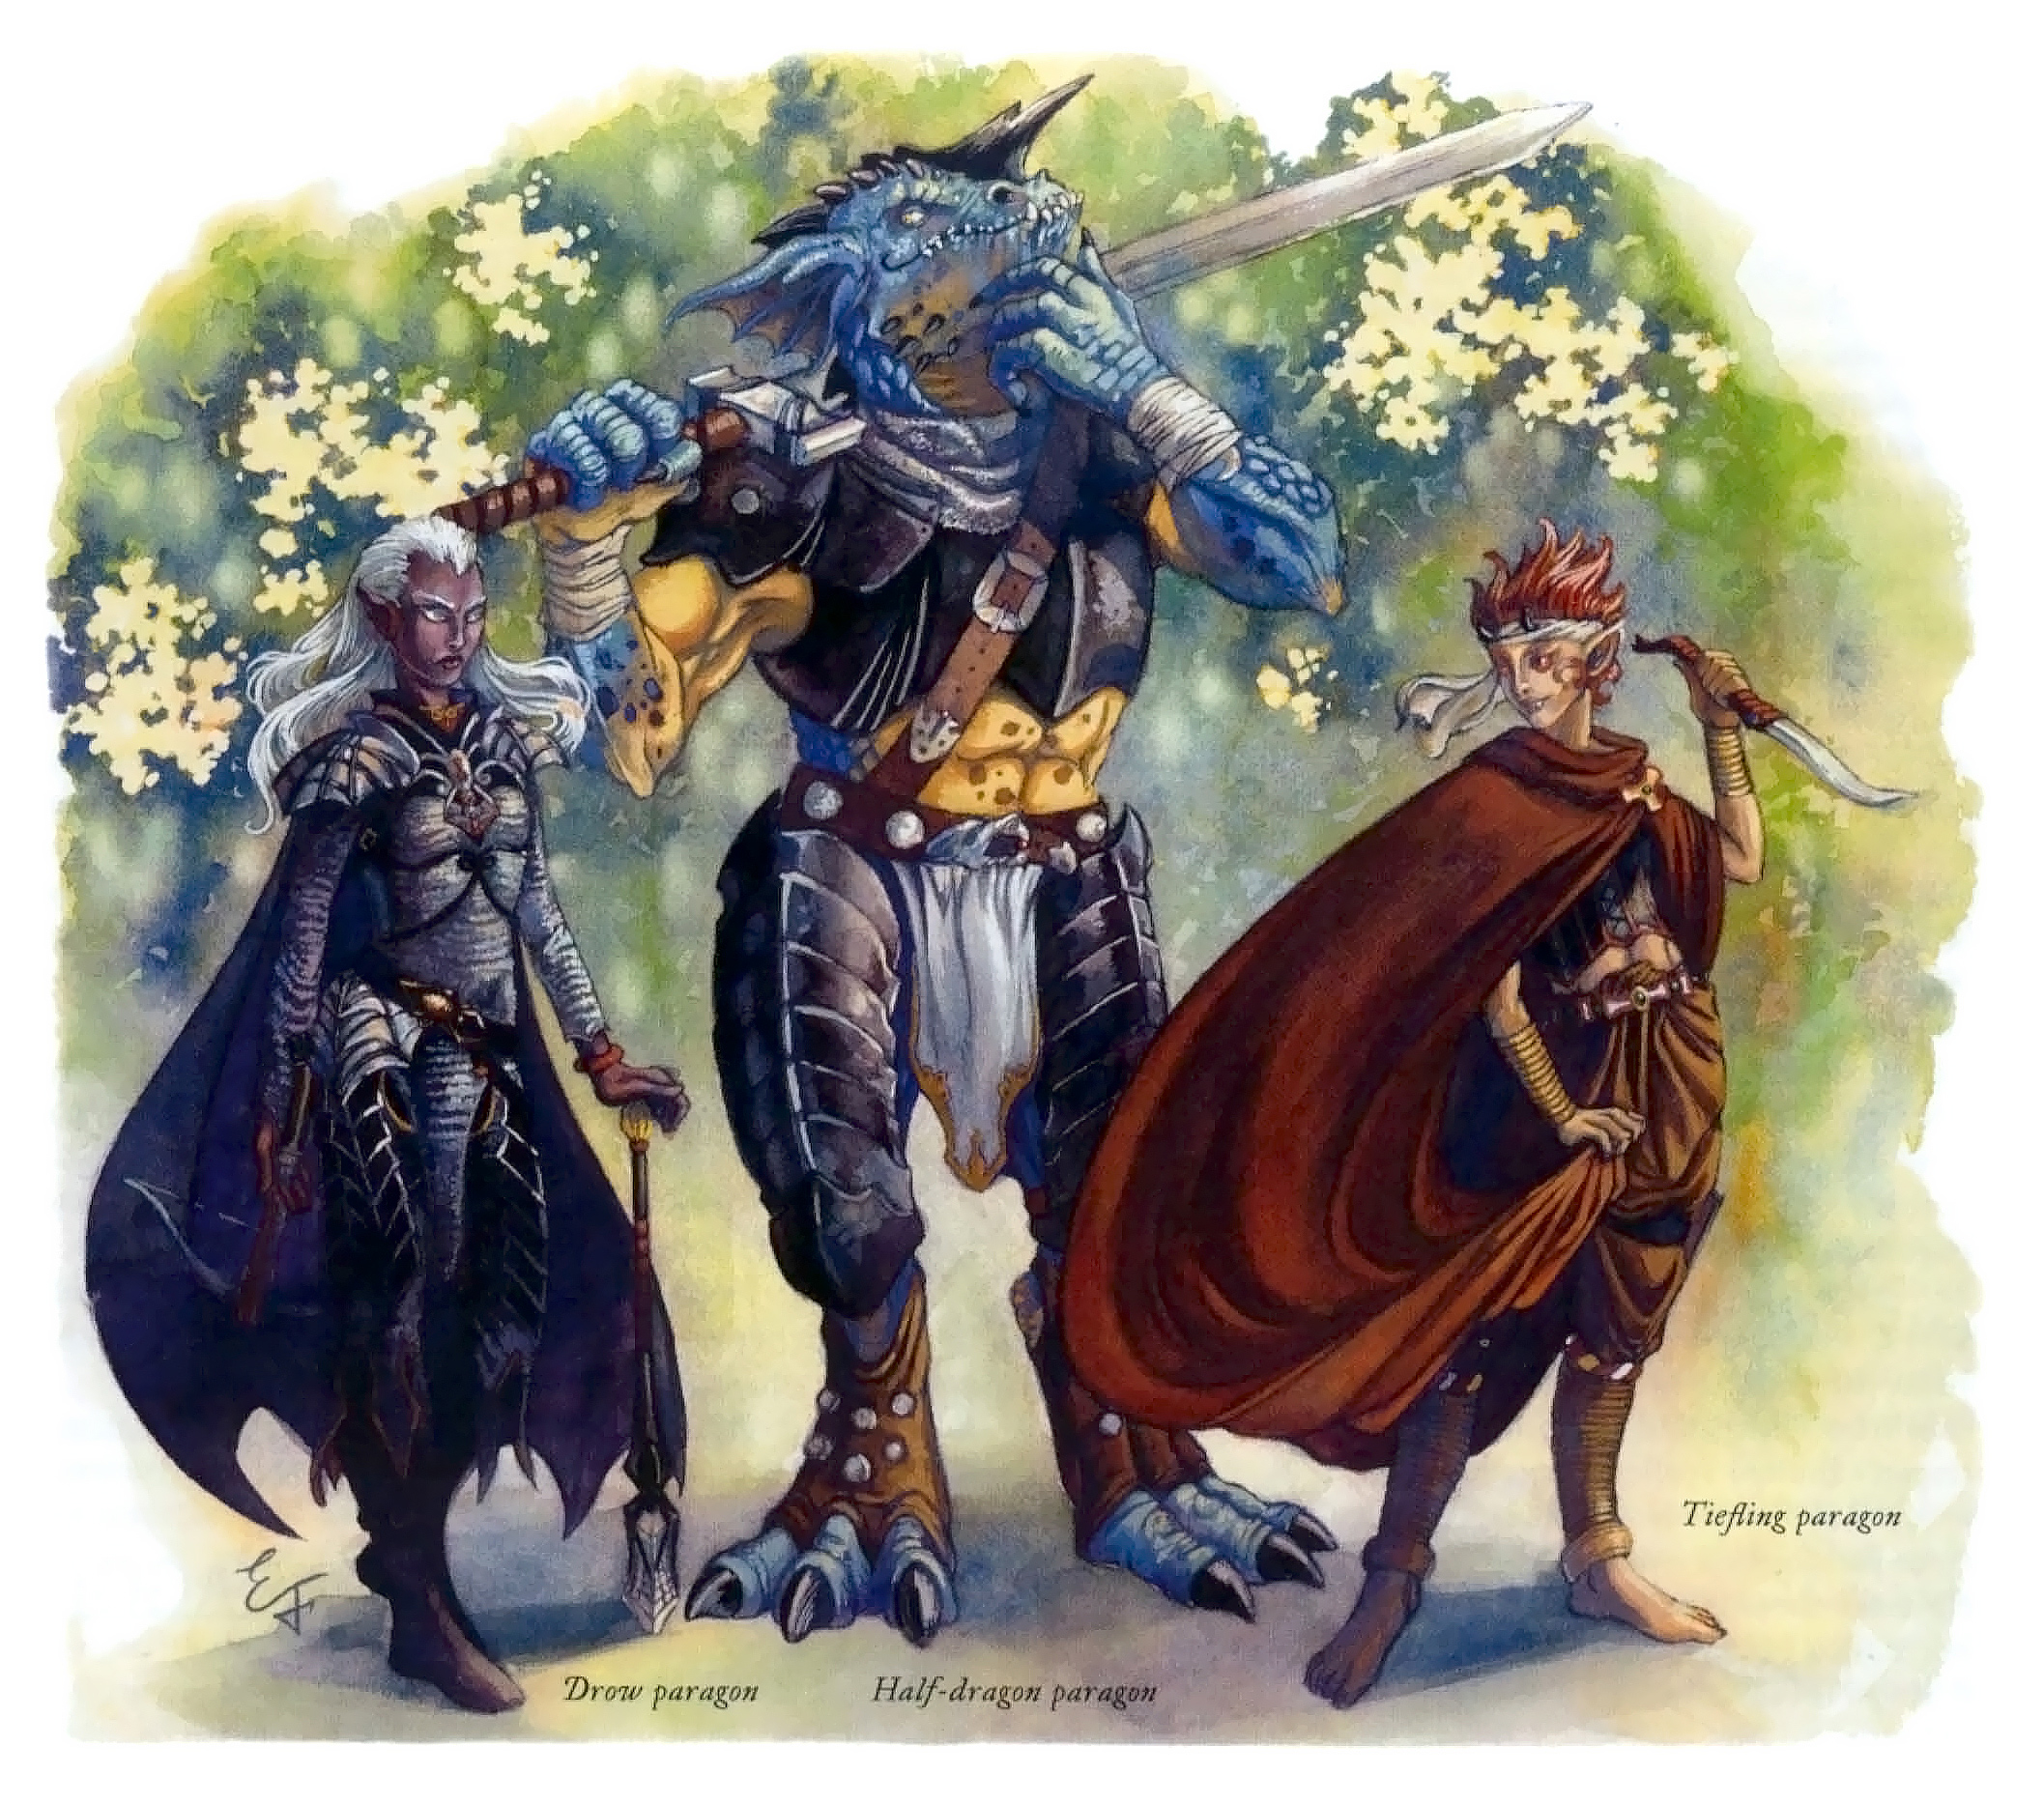 half-dragon Paragoni: drow, mezzo-drago e tiefling - by Emily Fiegenschuh Unearthed Arcana (2004-02) © Wizards of the Coast & Hasbro